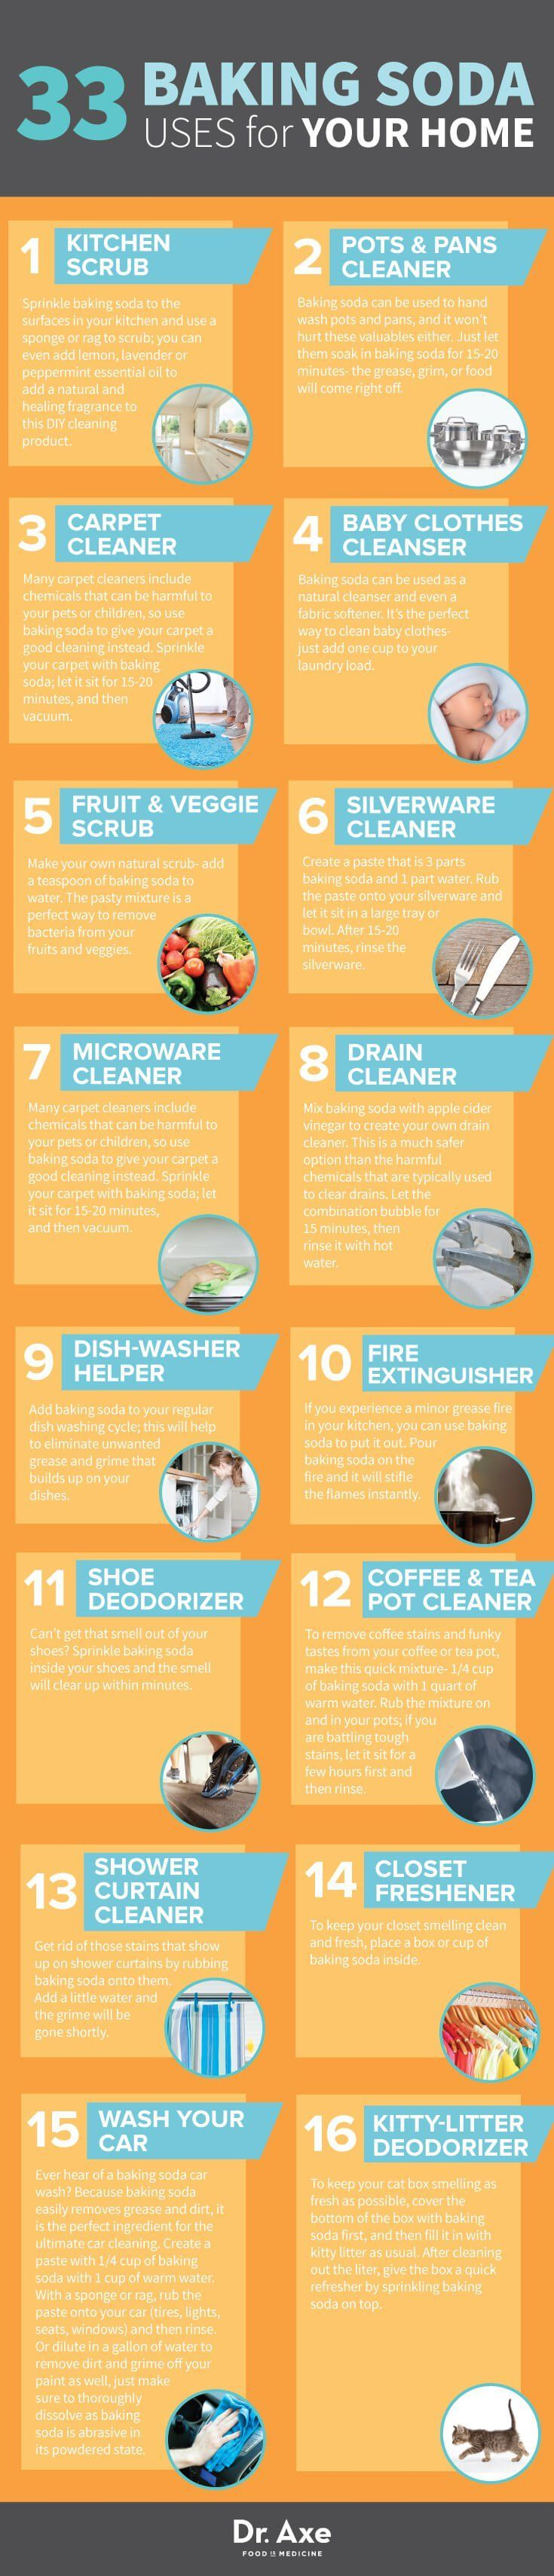 Baking Soda Uses for Home infographic list